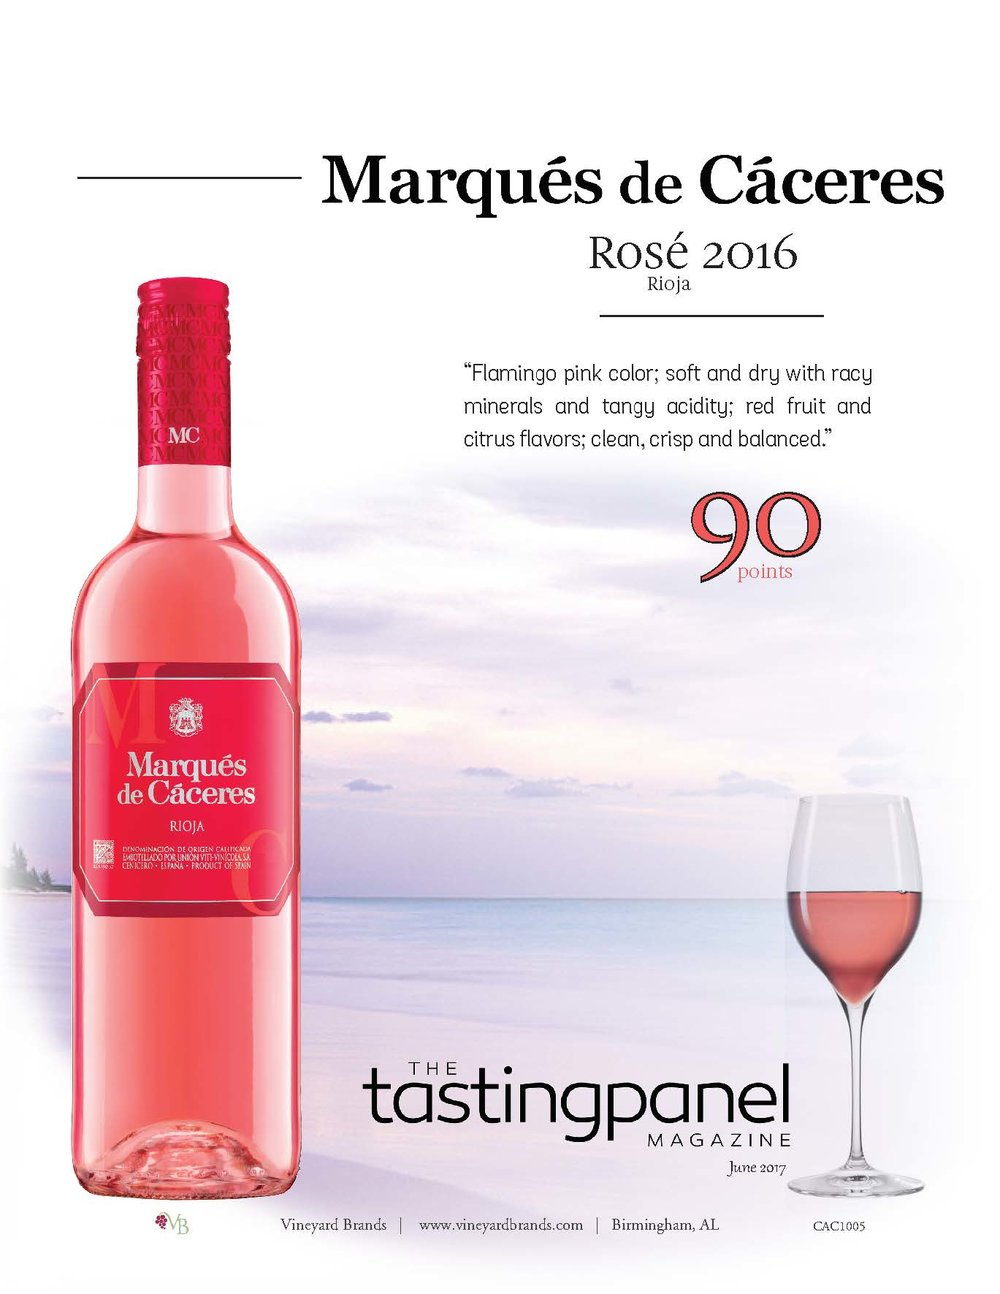 Marques de Caceres Rose 2016.jpg